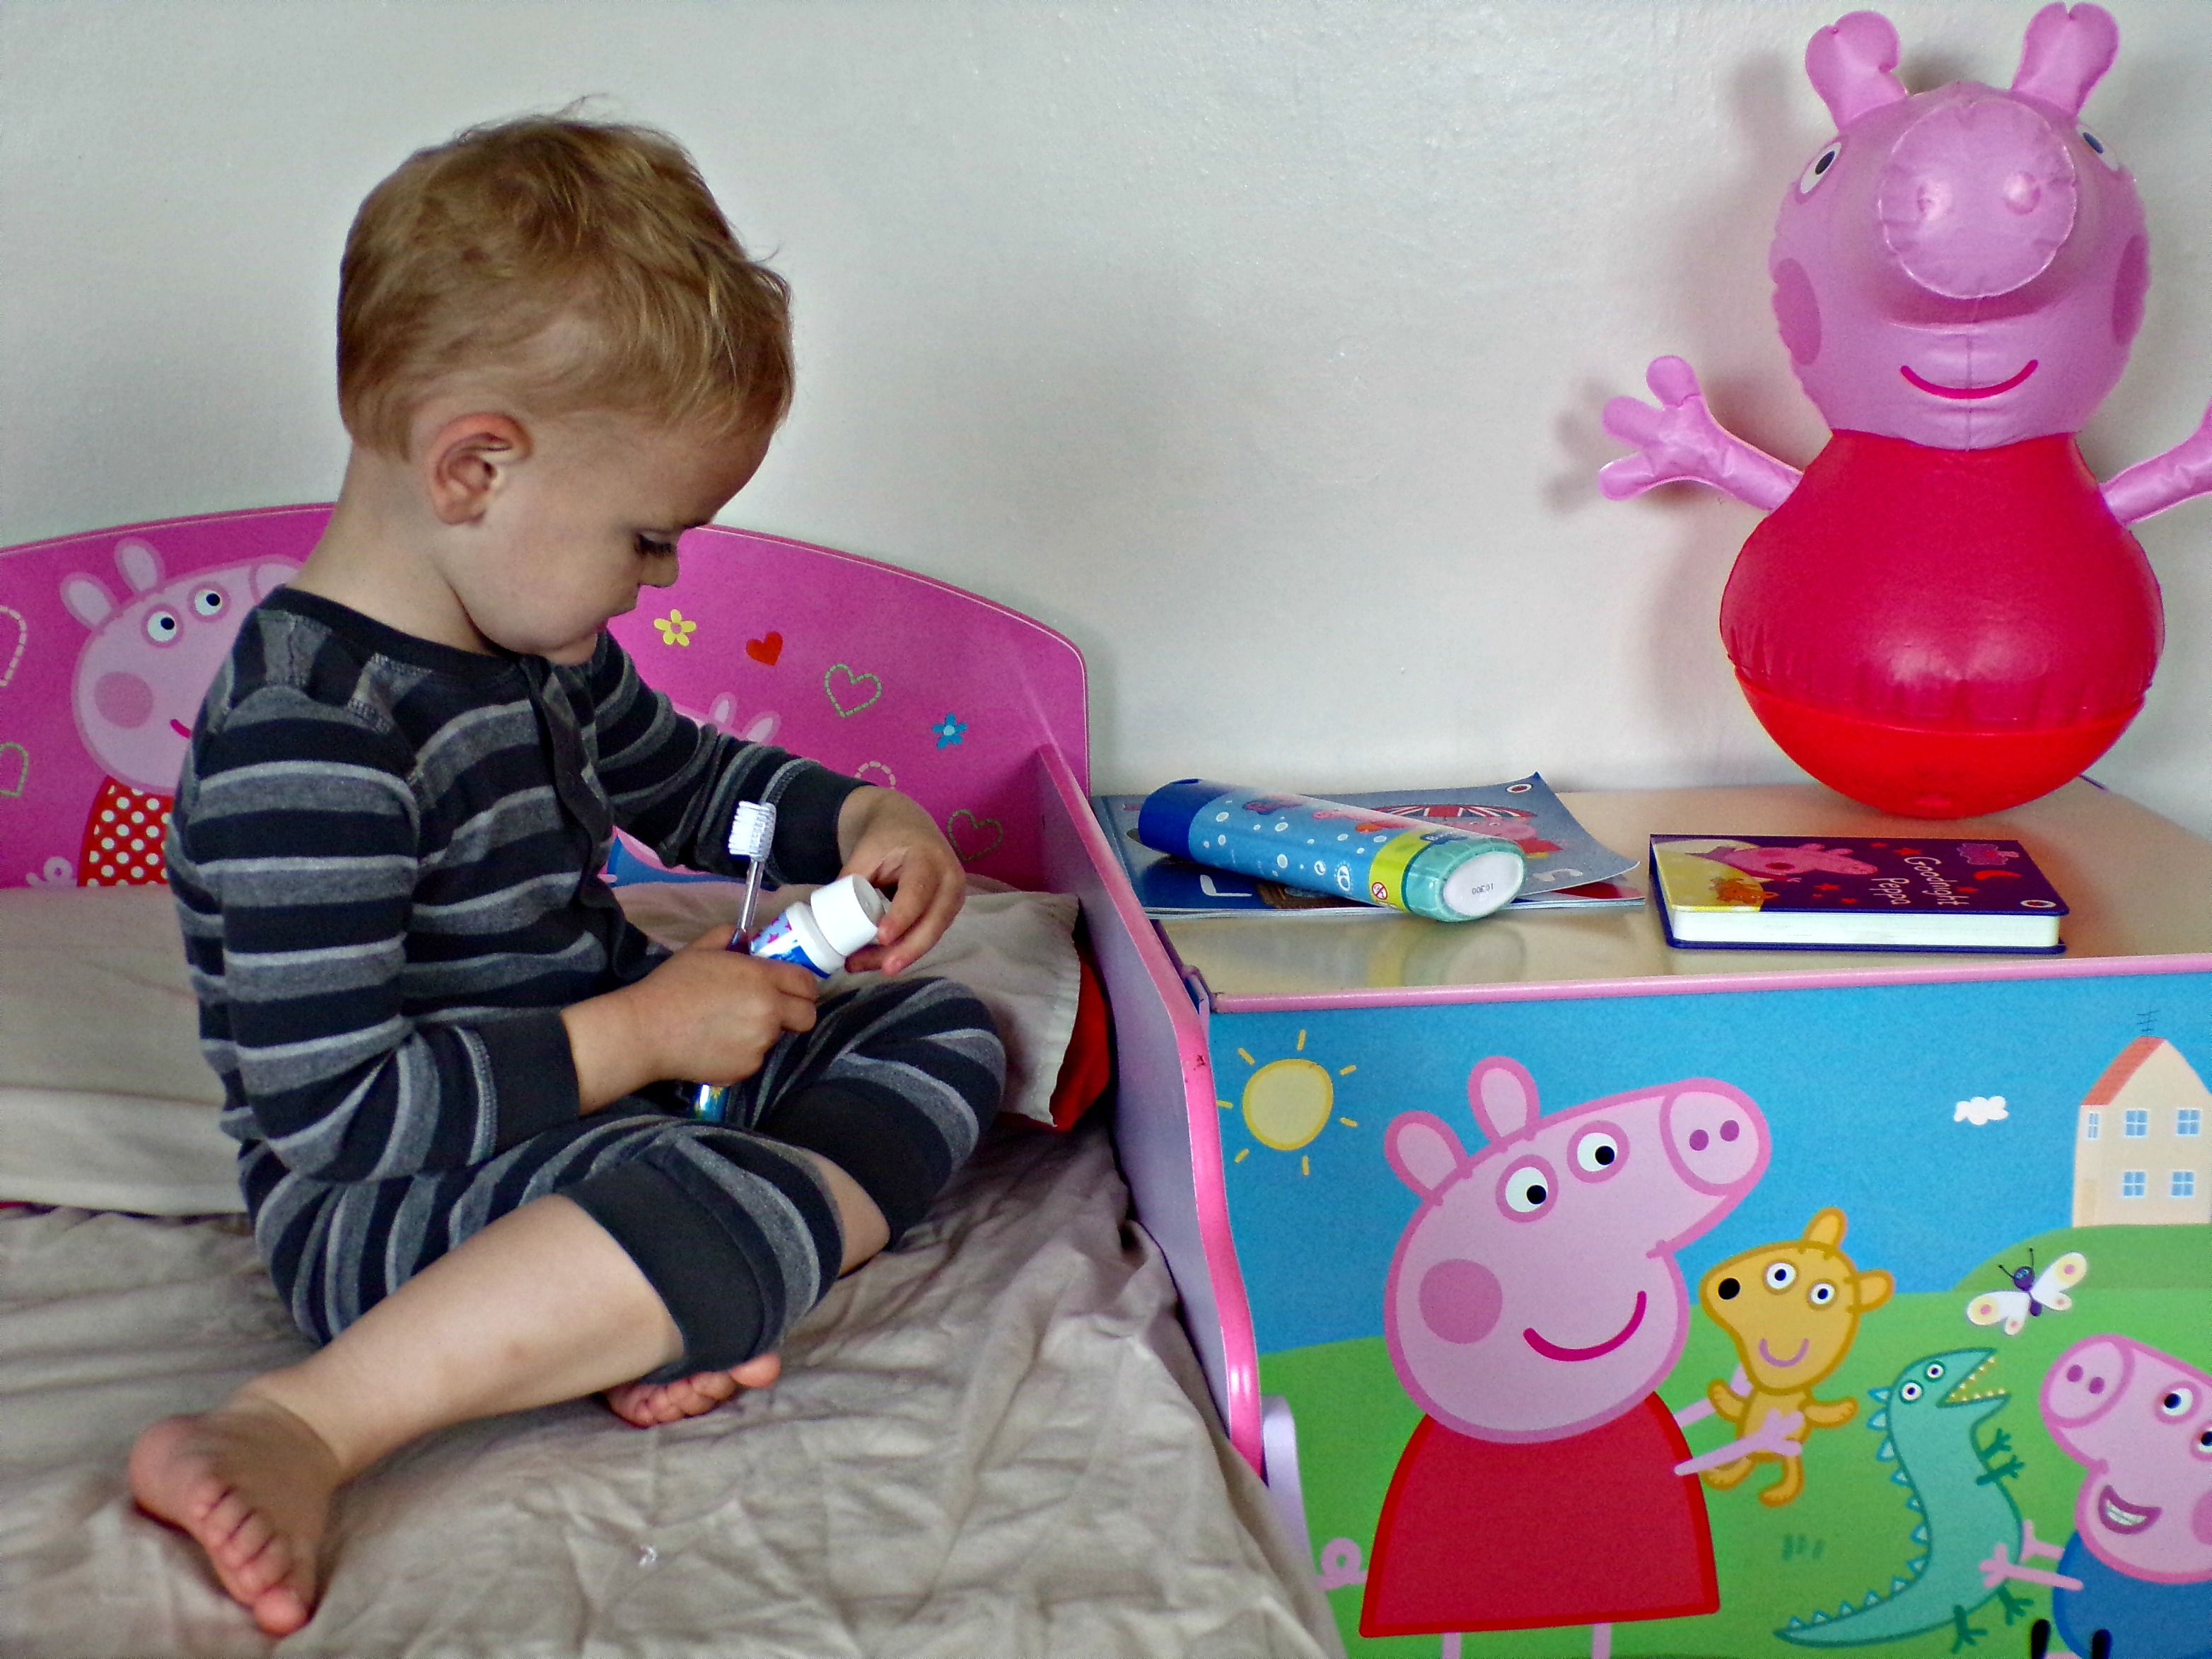 This week is the launch of the #BathBookBed campaign from The Book Trust. It's fronted by Peppa Pig and parenting expert Jo Frost.